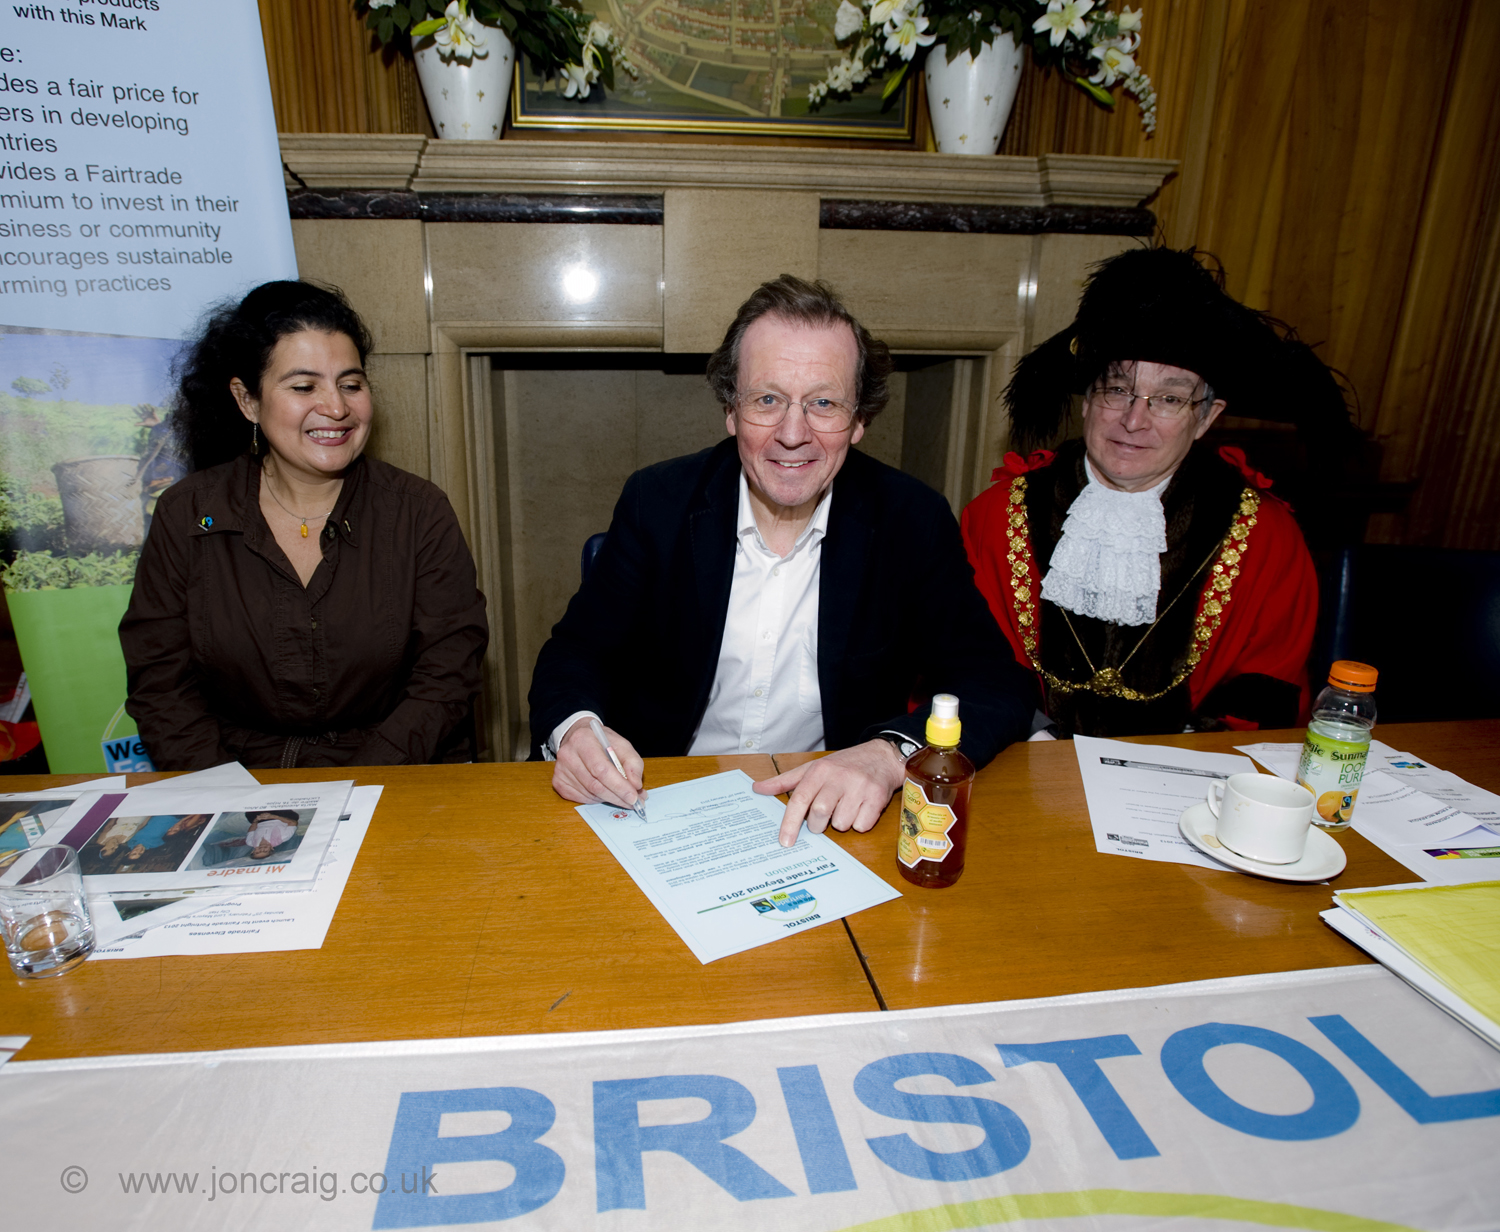 Bristol Mayor Ferguson signs declaration to put Fairtrade at heart of the city